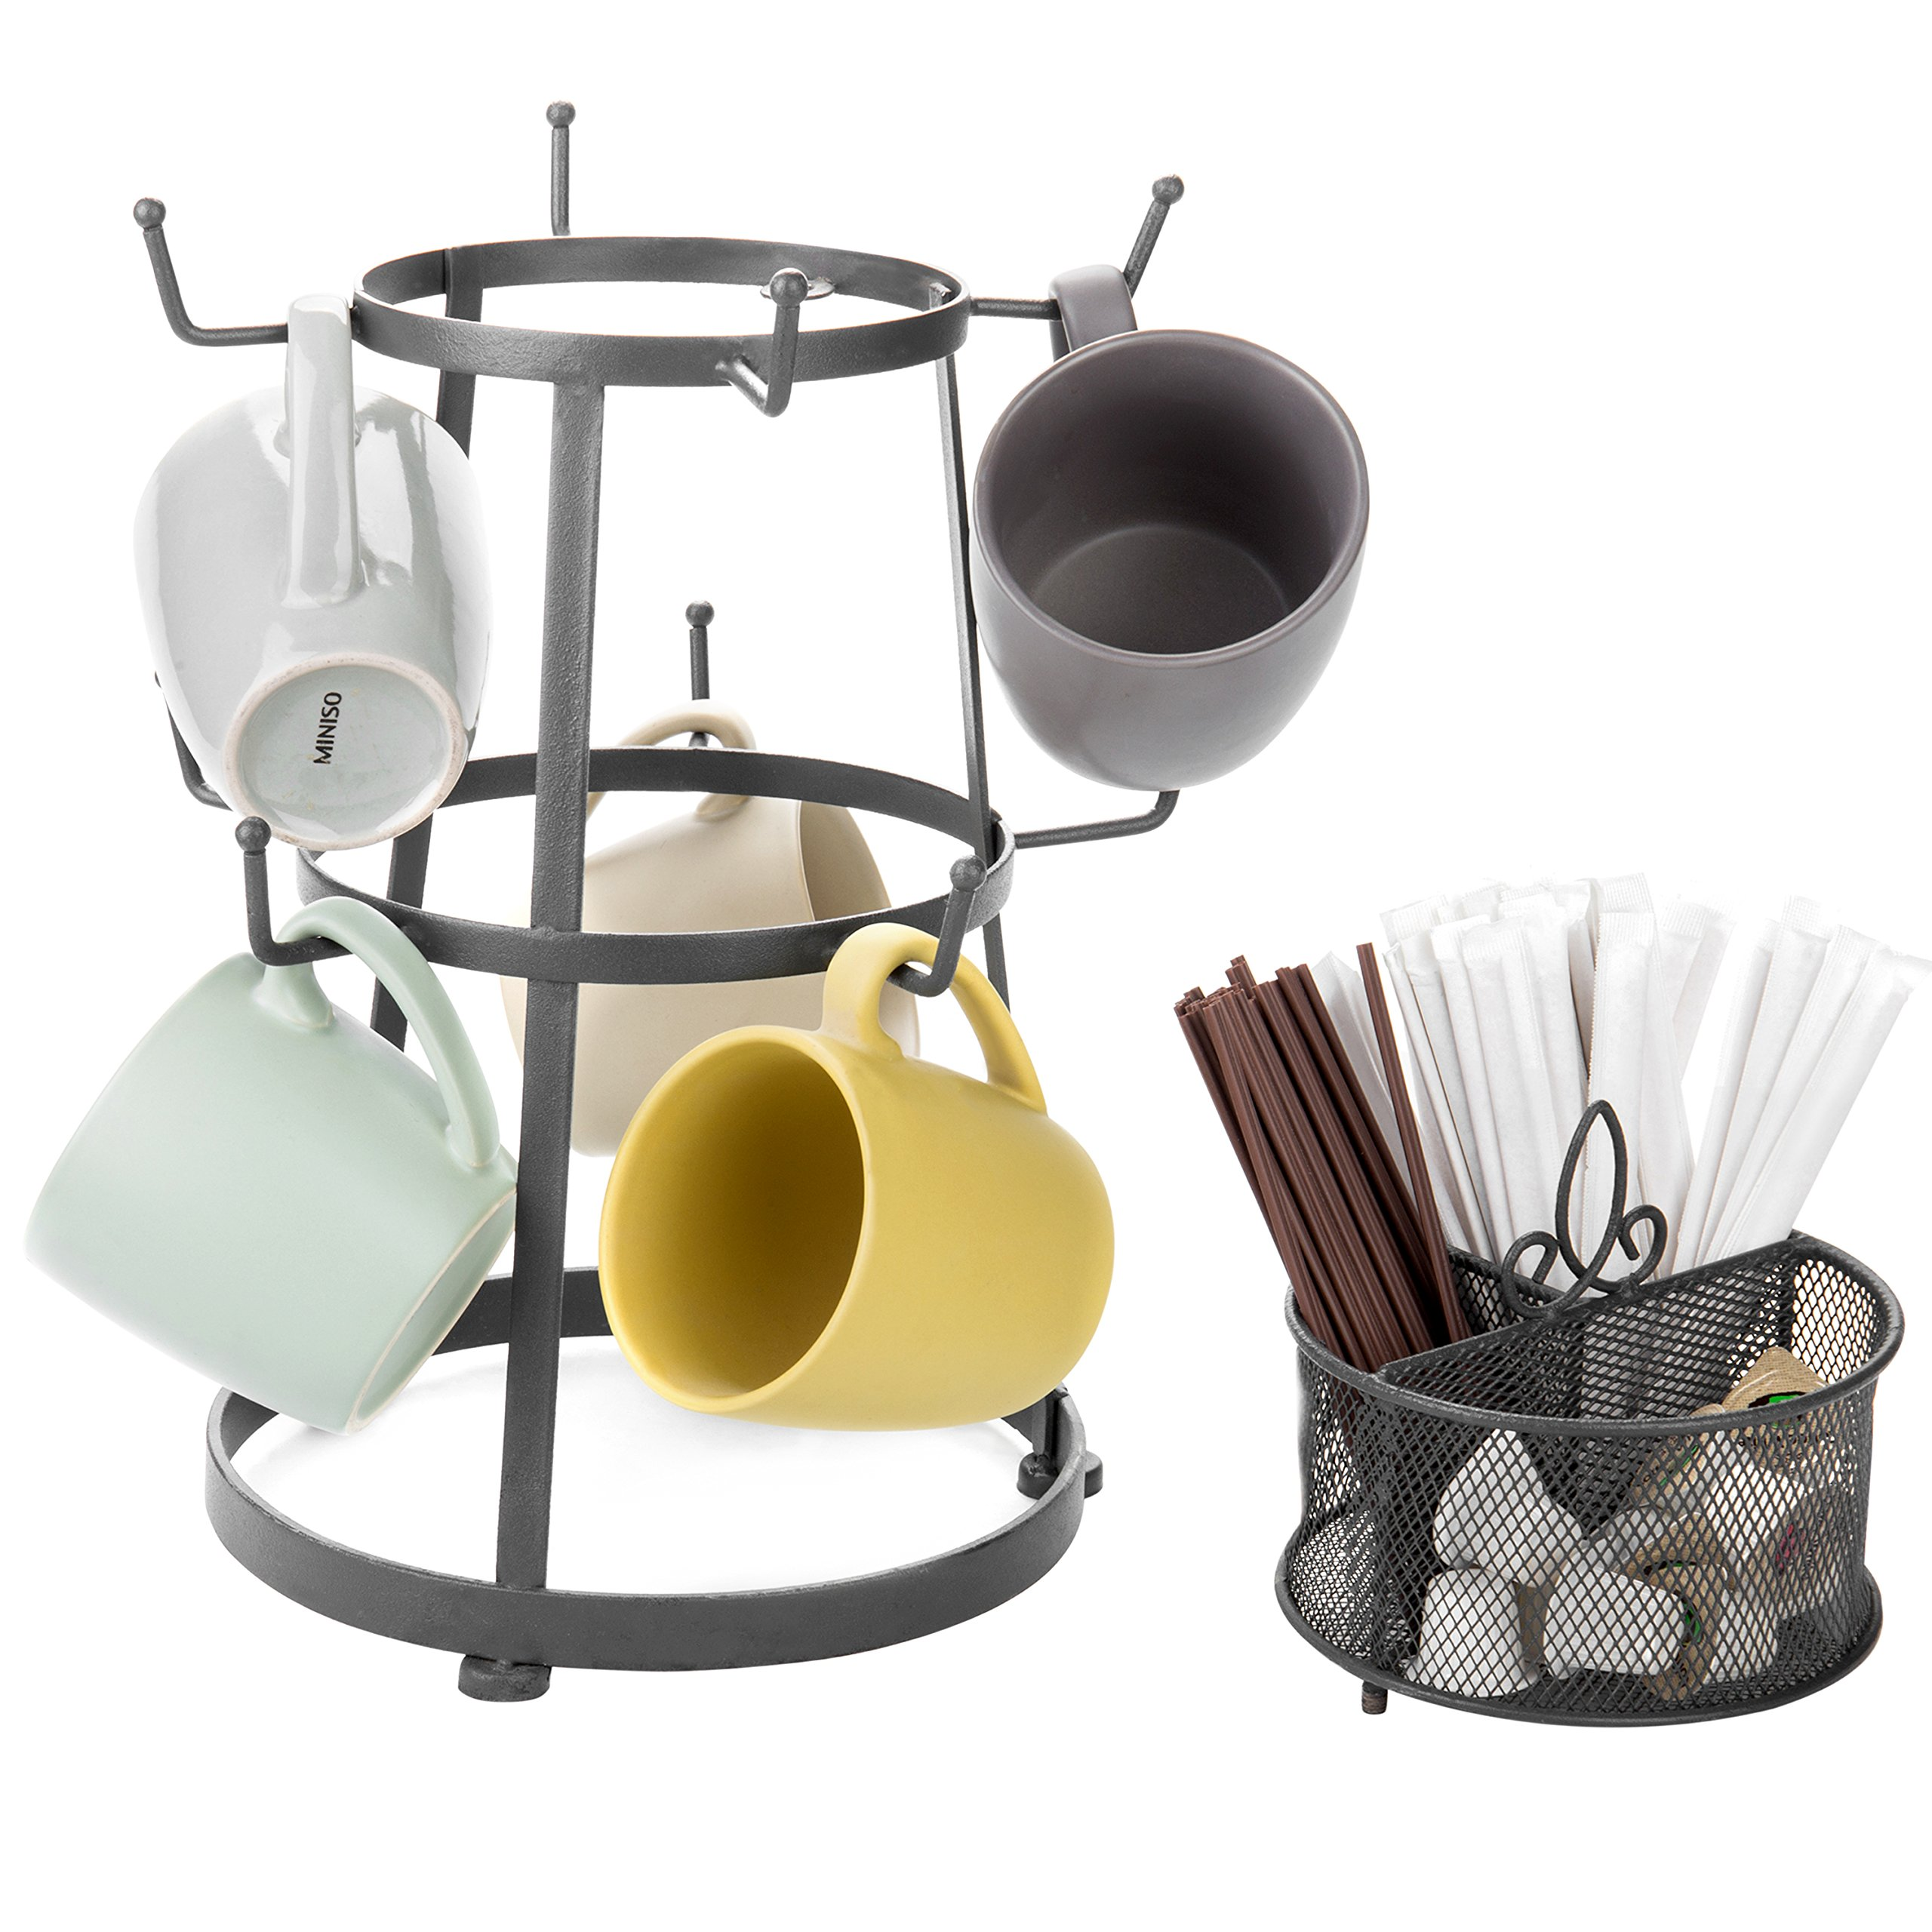 MyGift 9-Hook Grey Metal Coffee Mug & Cup Stand with Utensil Bin w/Removable Accessory Basket by MyGift